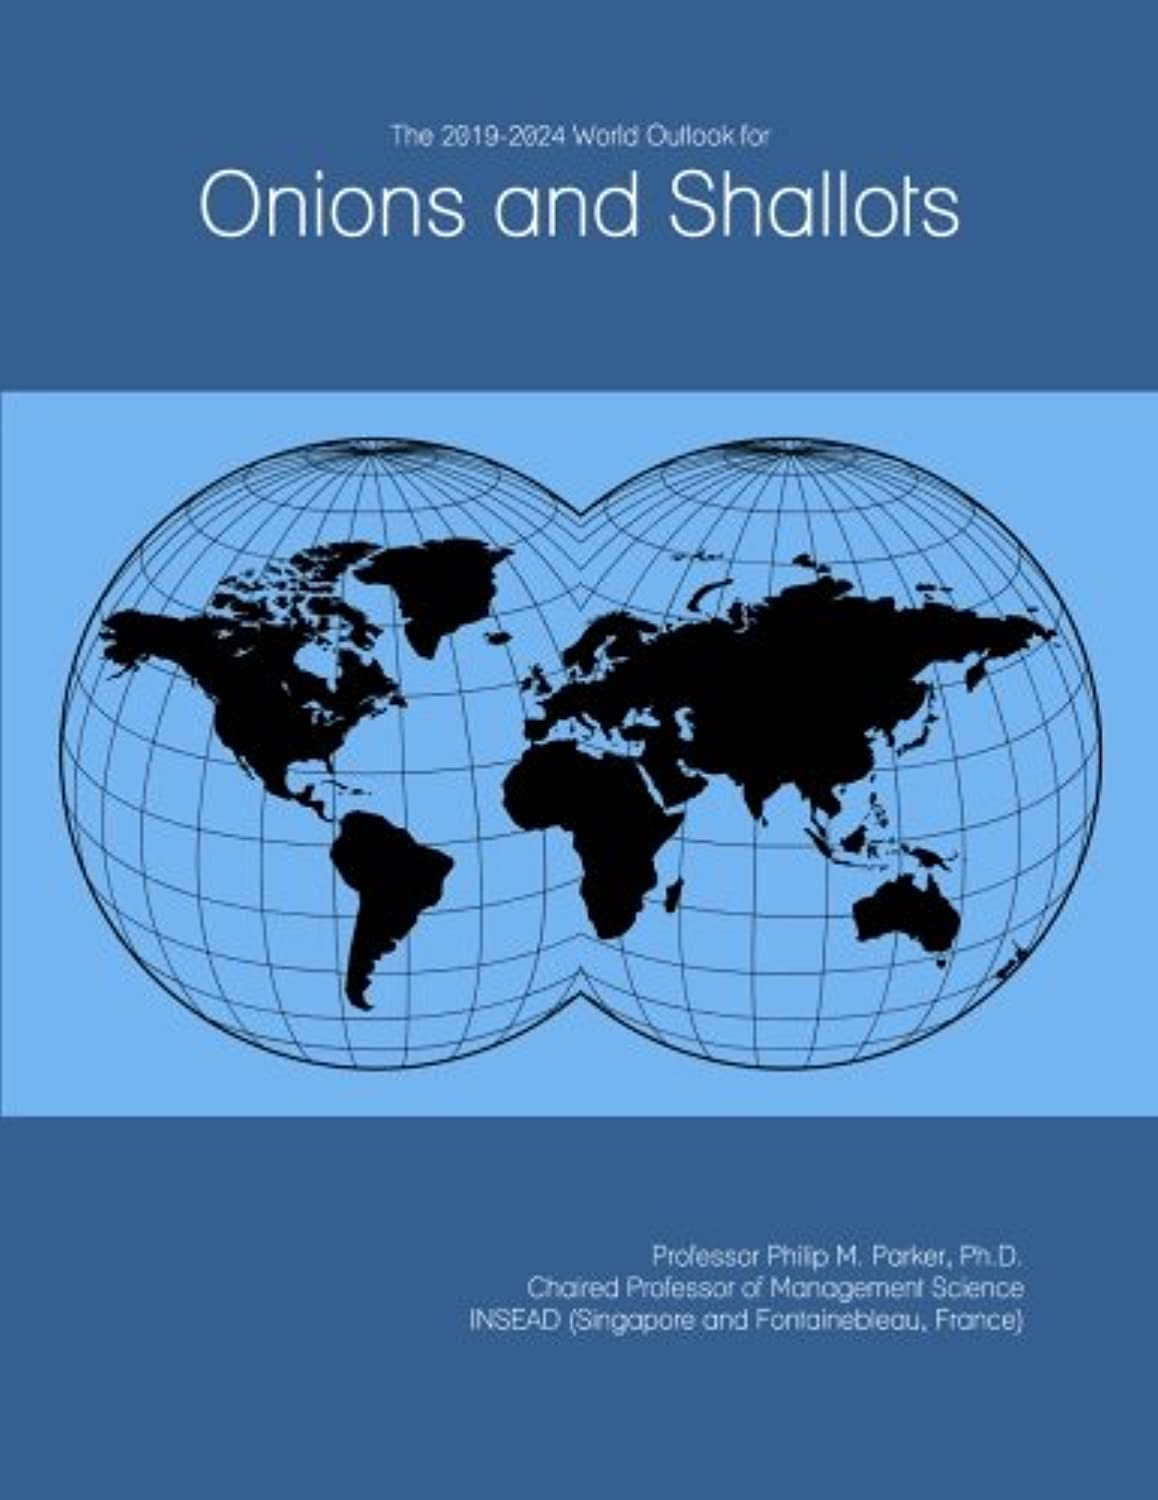 The 2019-2024 World Outlook for Onions and Shallots